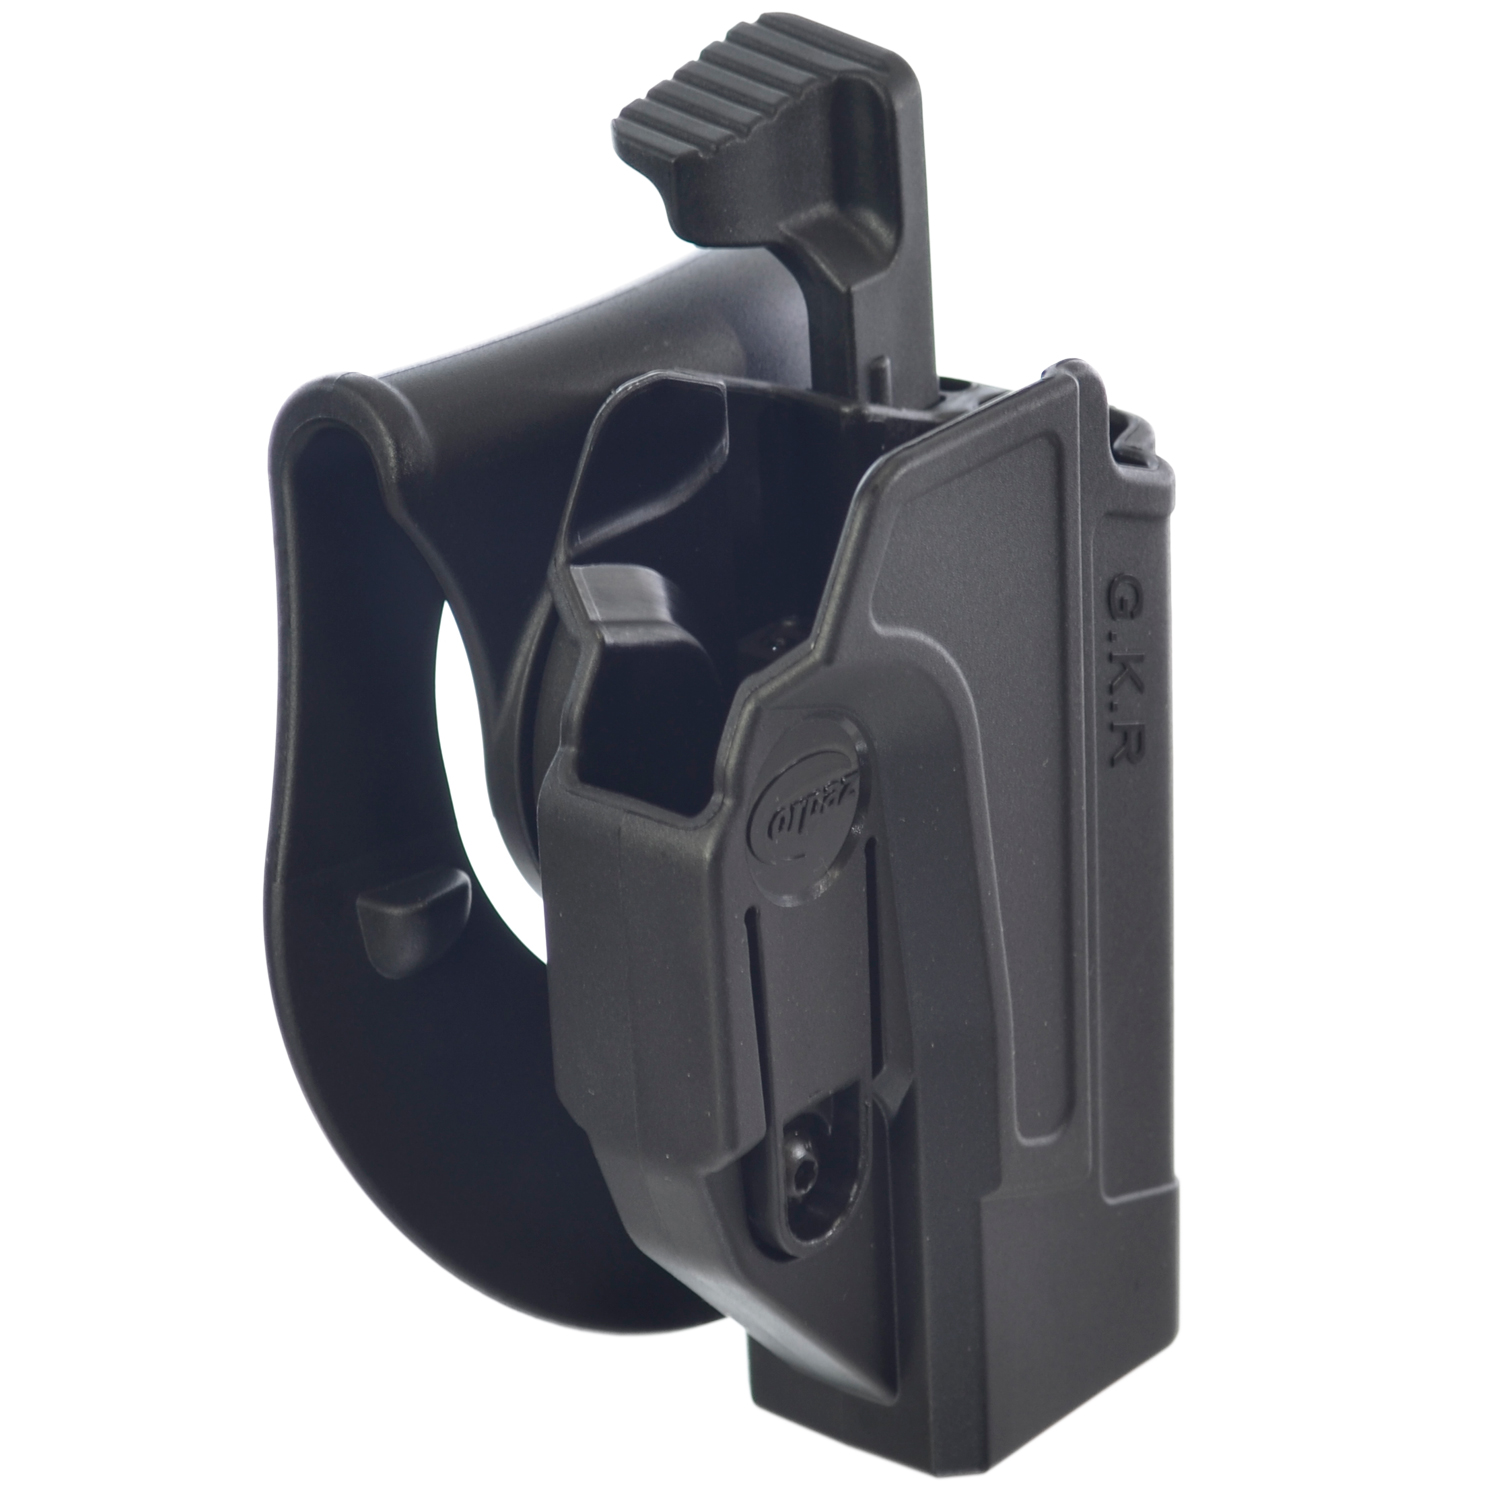 Orpaz Glock 19 Holster Fits Also Glock 17 Glock 22 Glock 23 Glock 26 and Glock 34 Paddle Holster by Orpaz